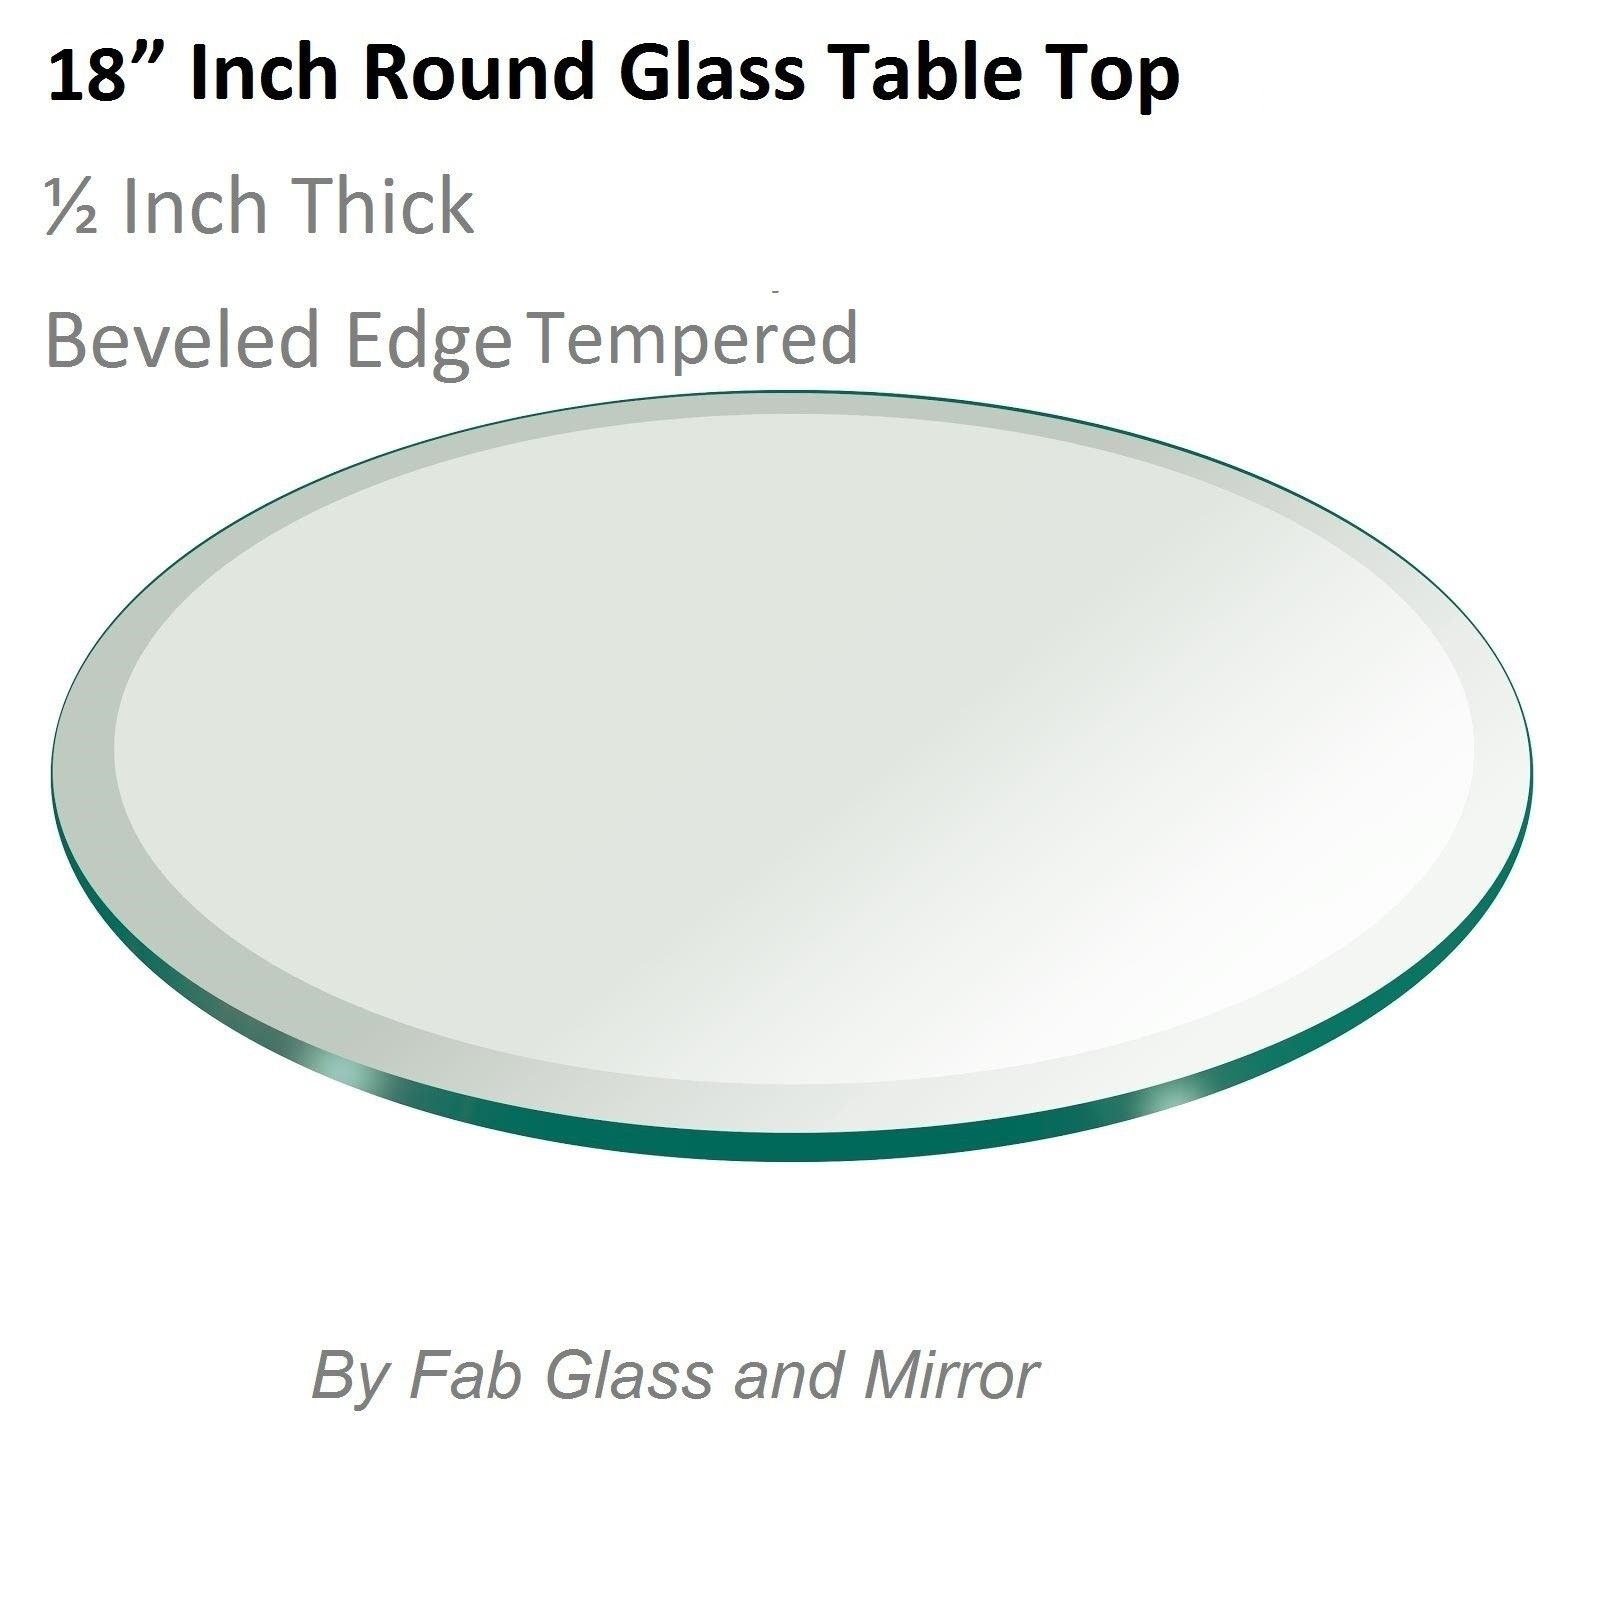 Glass Table Top 18 Inch Round Beveled Edge Tempered Glass Glass Top Table Round Glass Table Tempered Glass Table Top